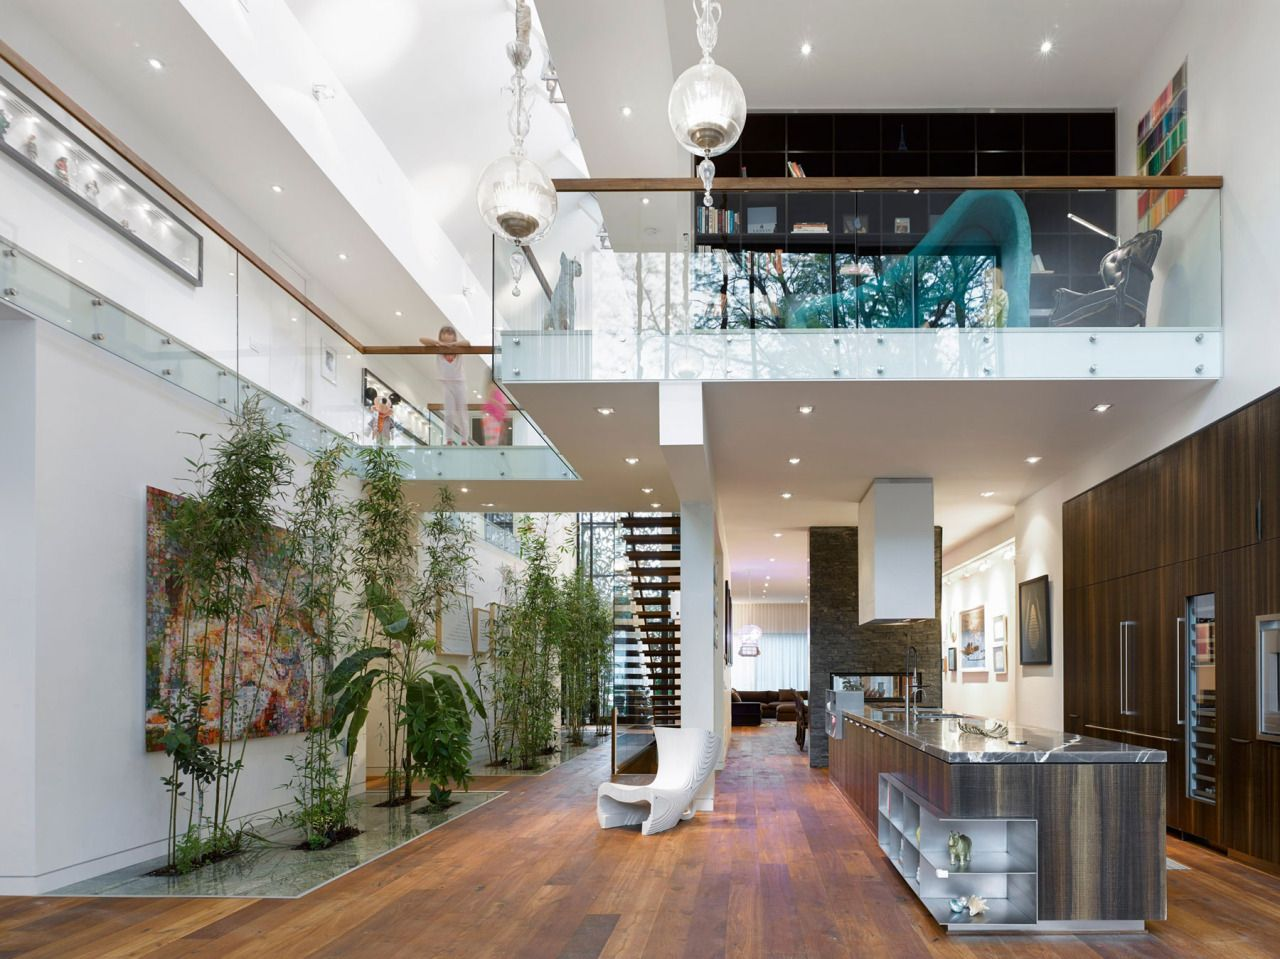 home lobby | #interiordesign #design #furniture | see more at www